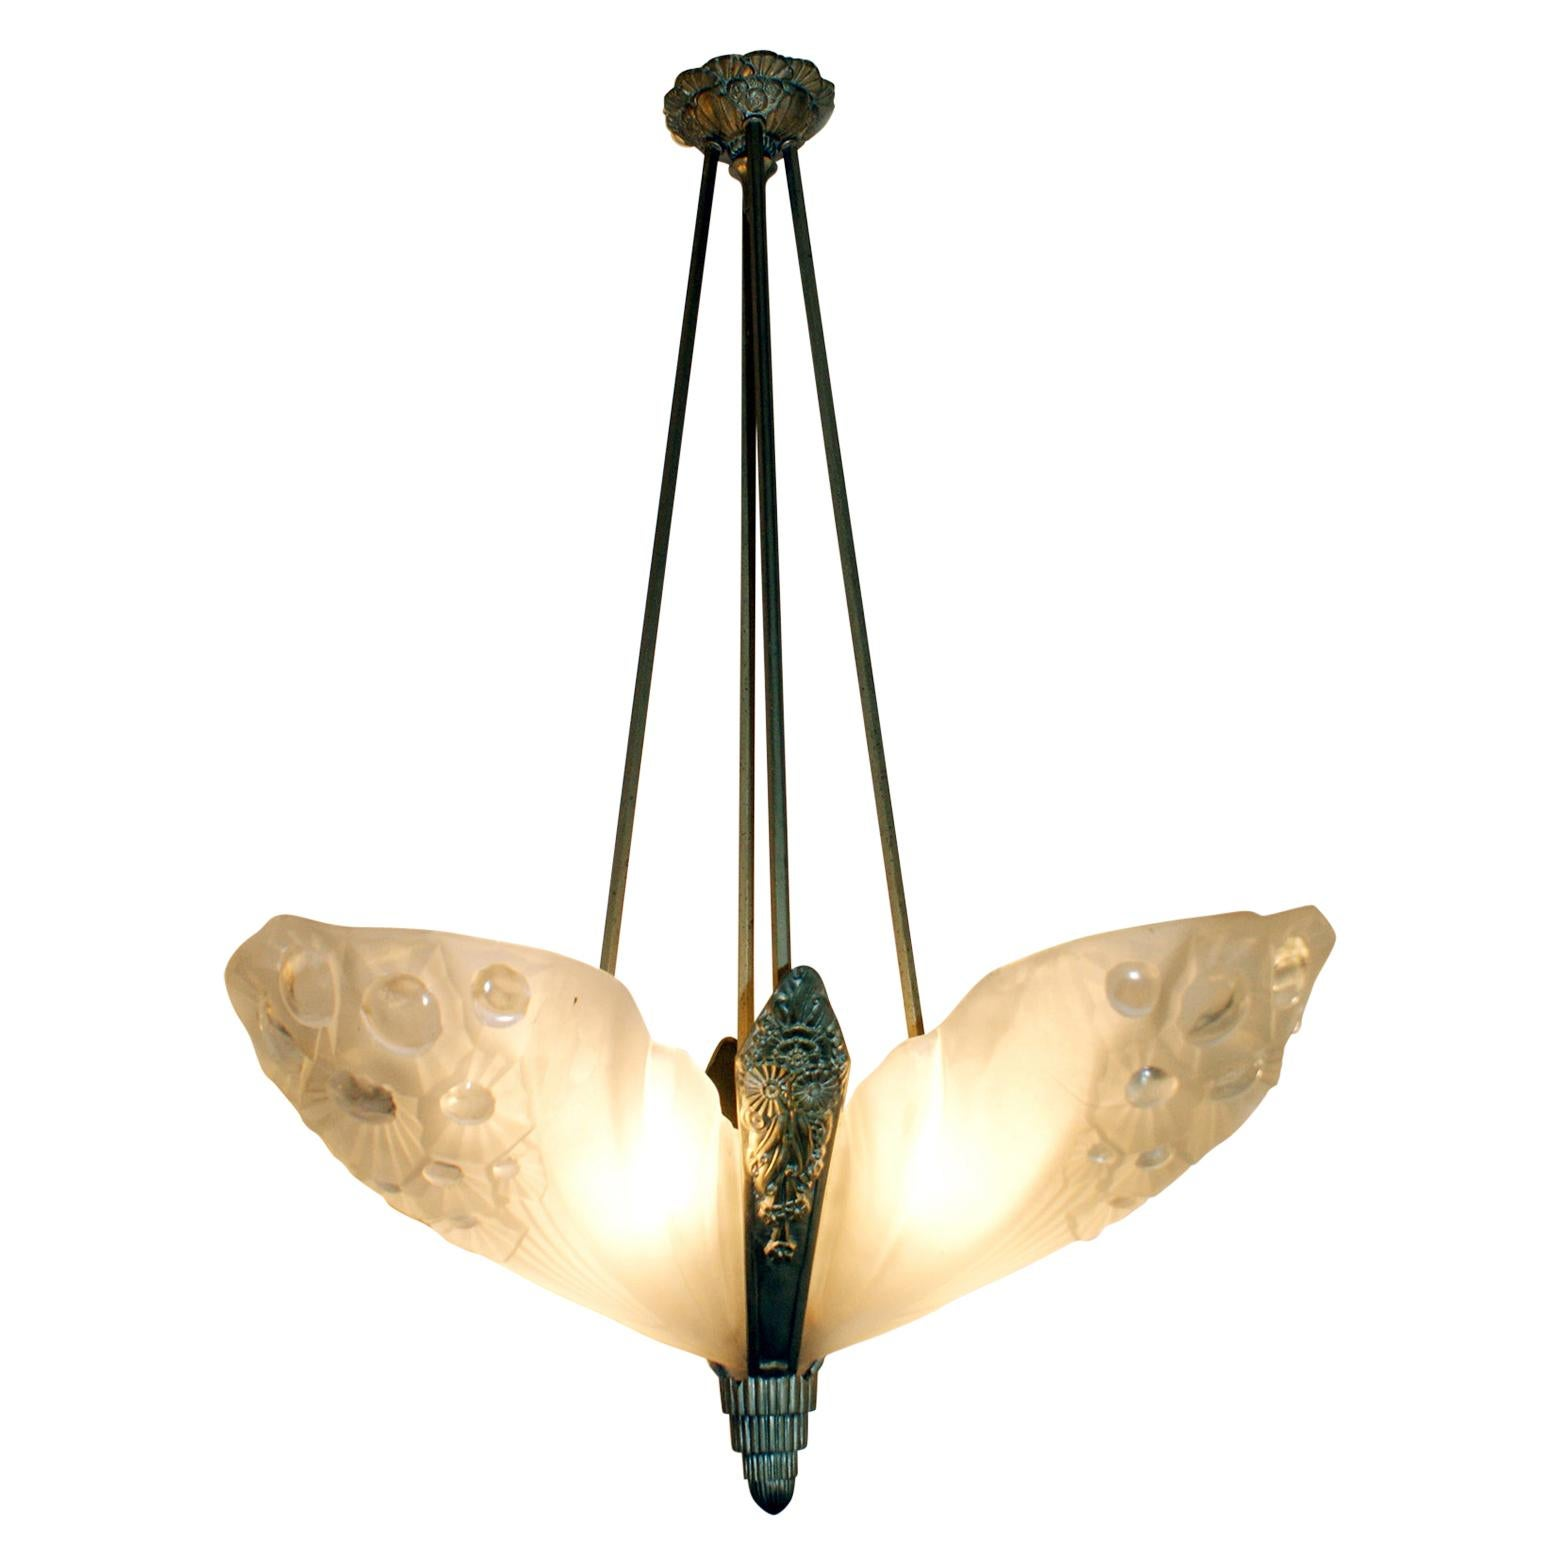 Gorgeous French Art Deco Chandelier Signed by Muller Frères Luneville